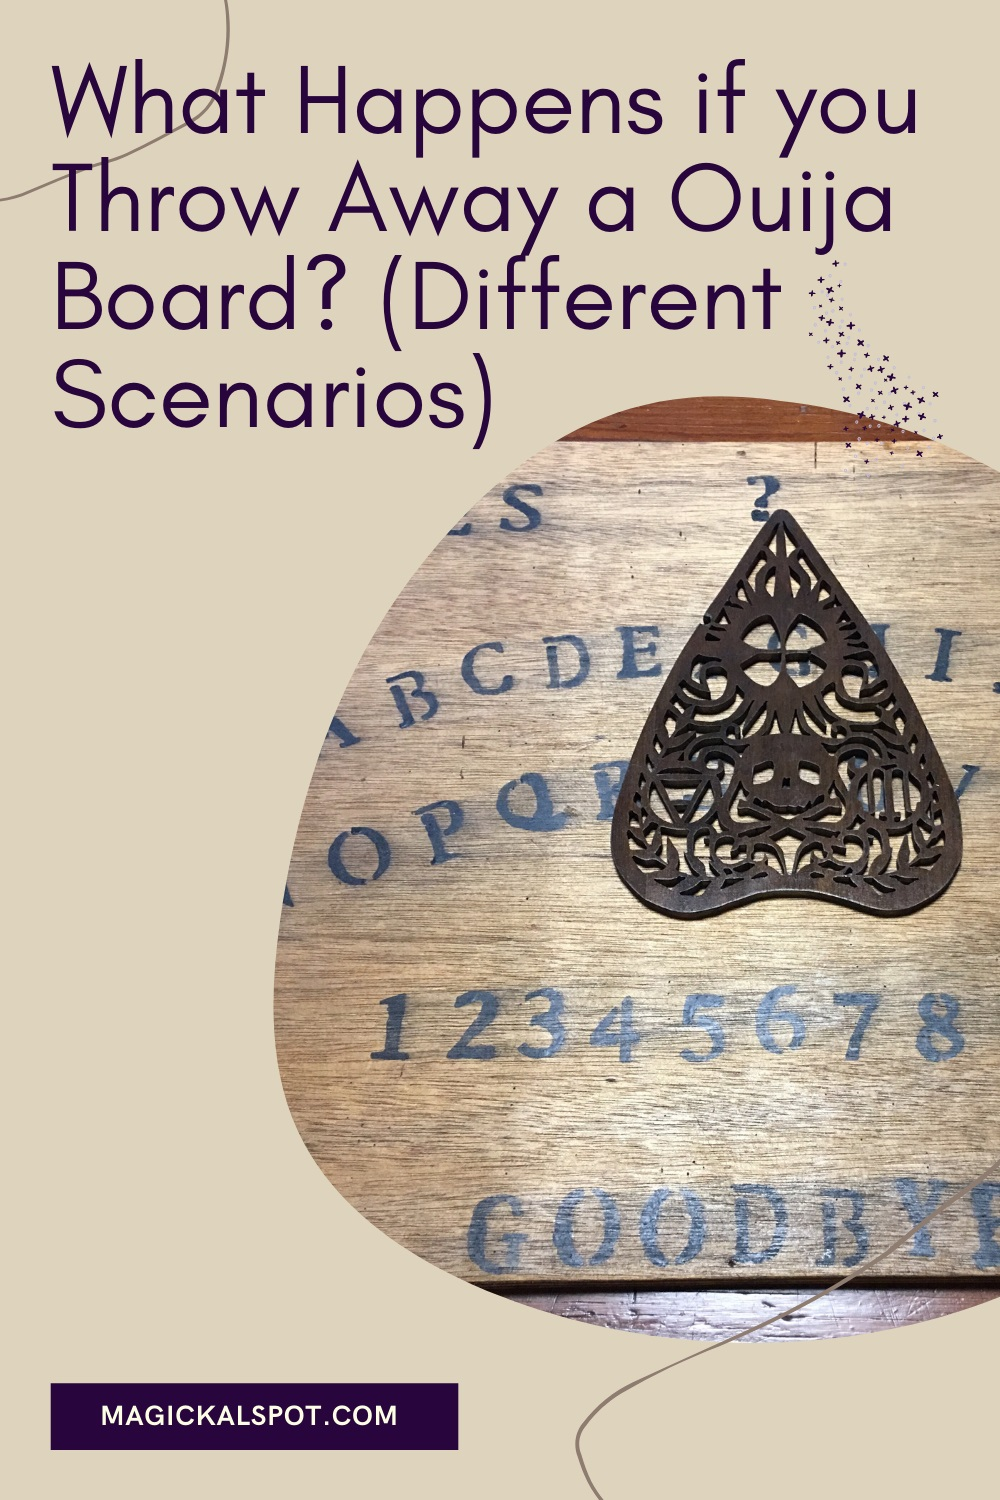 What Happens if you Throw Away a Ouija Board by Magickal Spot